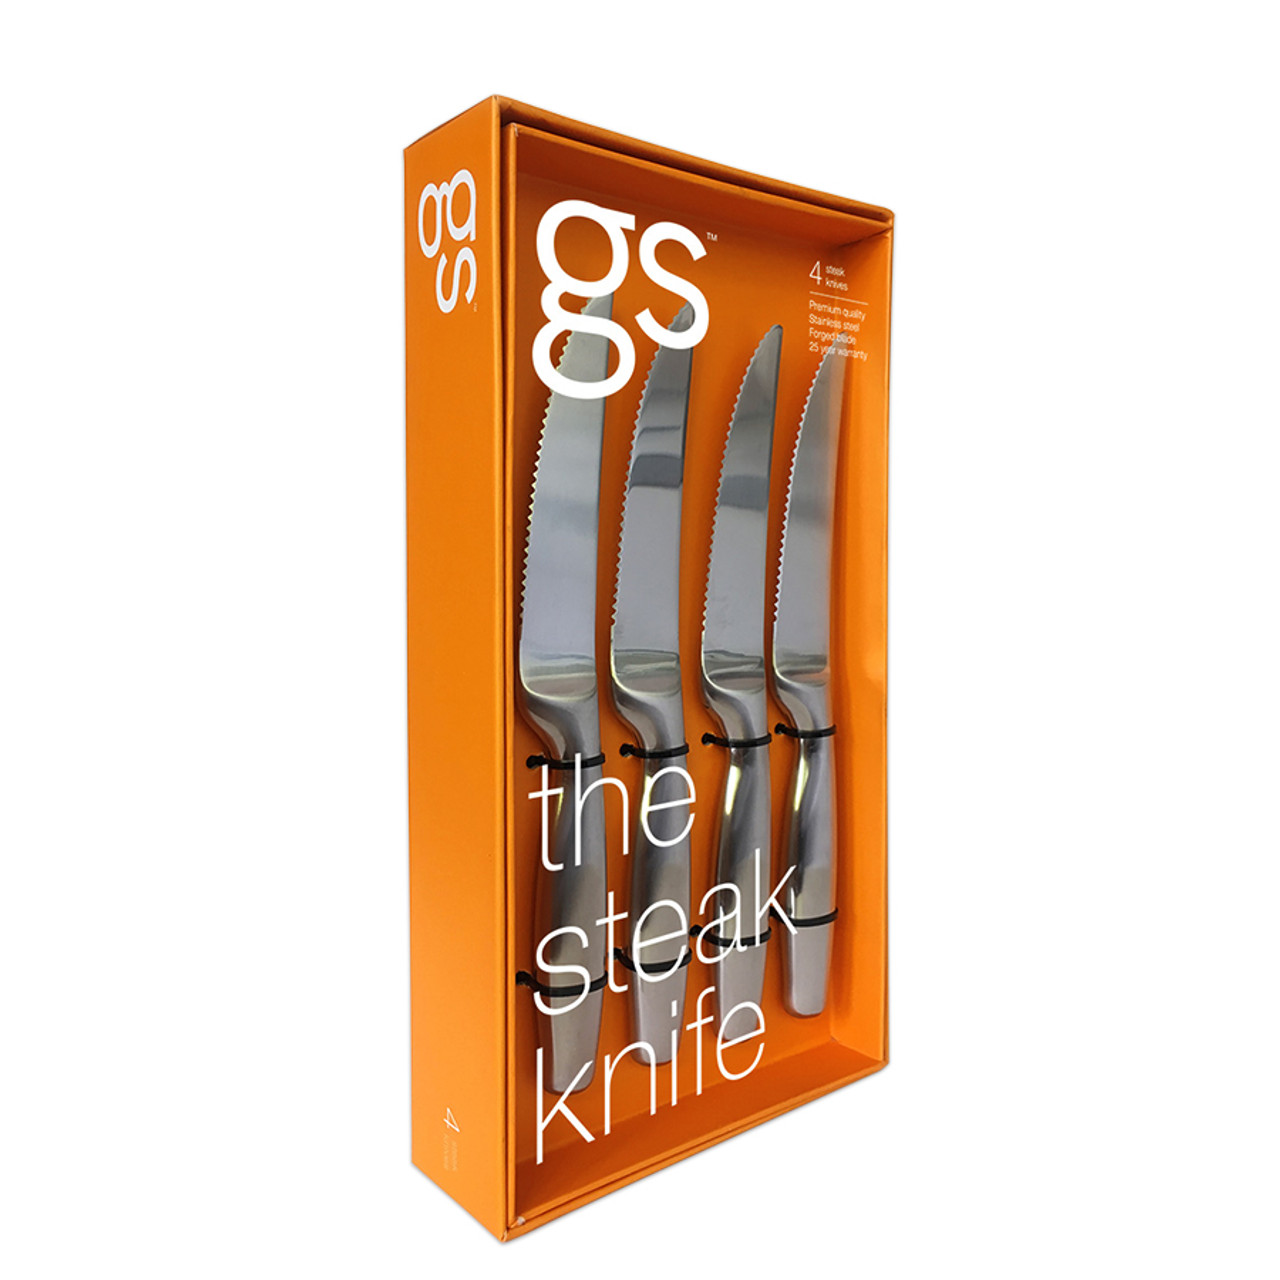 Steak knife - 4 piece set